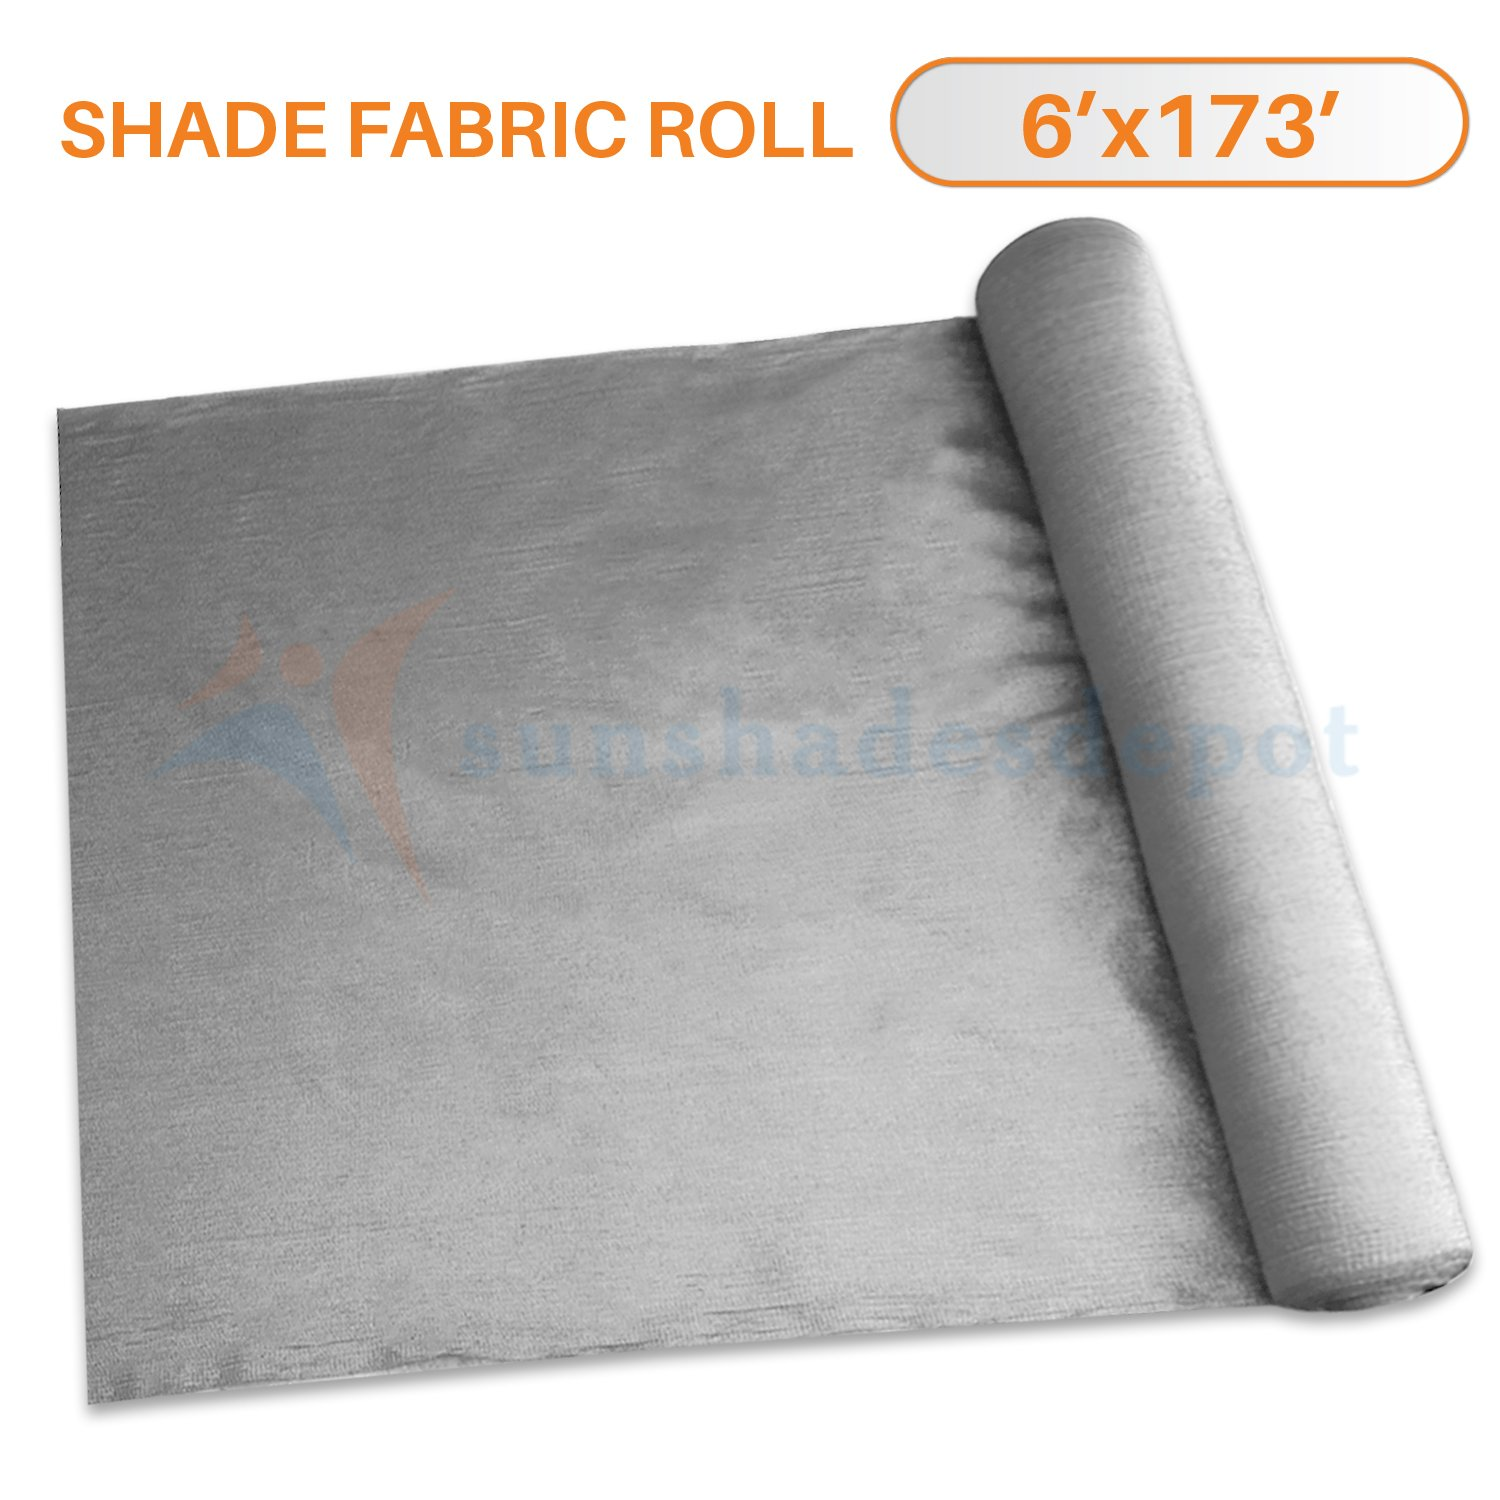 Sunshades Depot 6' x 173' Shade Cloth 180 GSM HDPE Light Grey Fabric Roll Up to 95% Blockage UV Resistant Mesh Net by Sunshades Depot